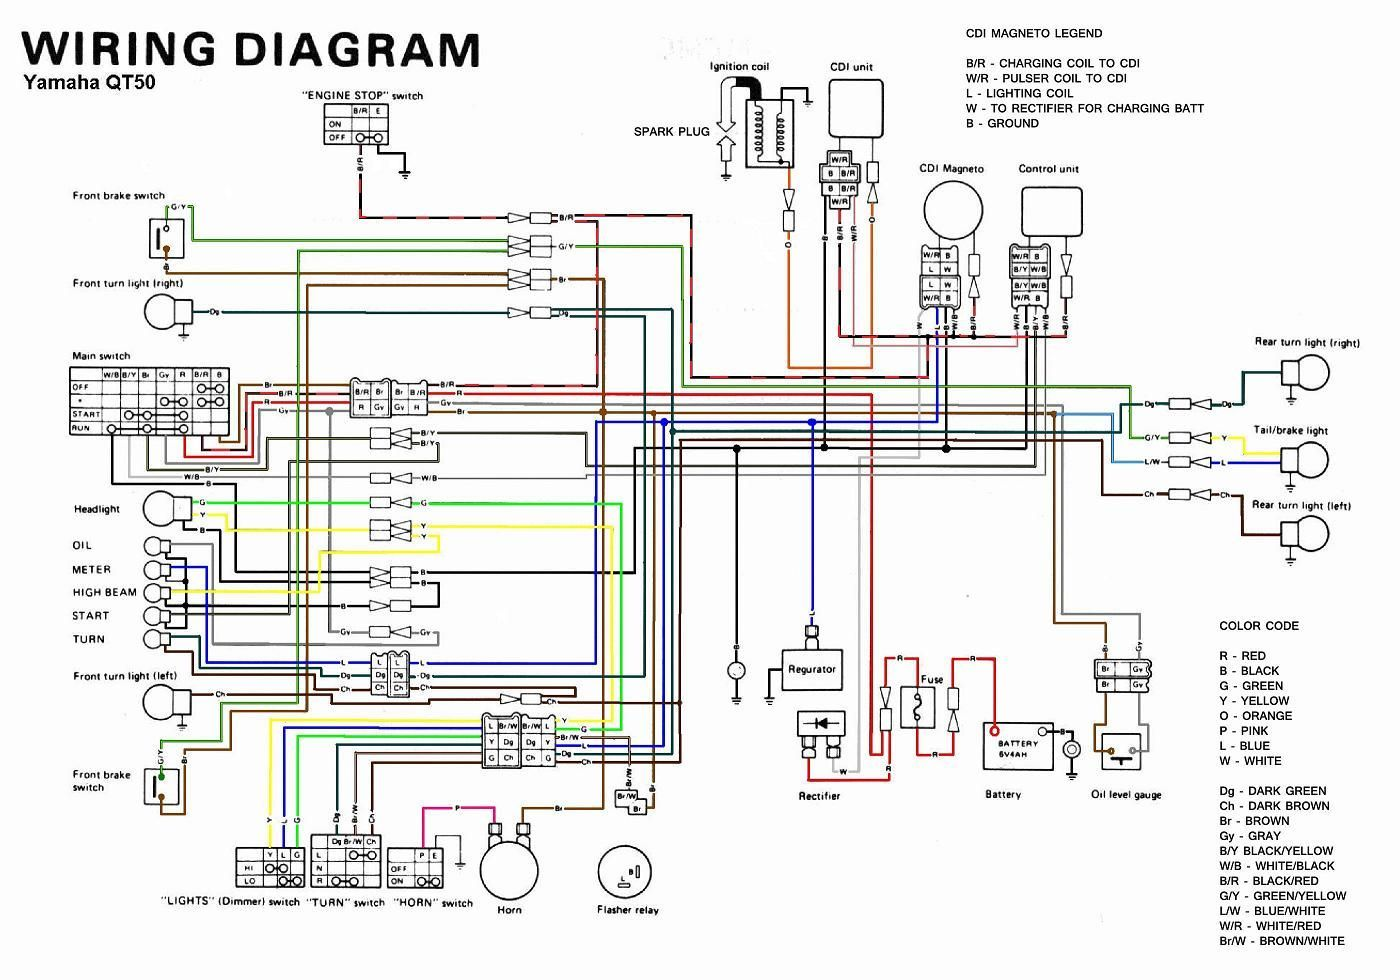 Toyota Ecu Wiring Diagrams In 2021 Motorcycle Wiring Yamaha Yamaha Engines